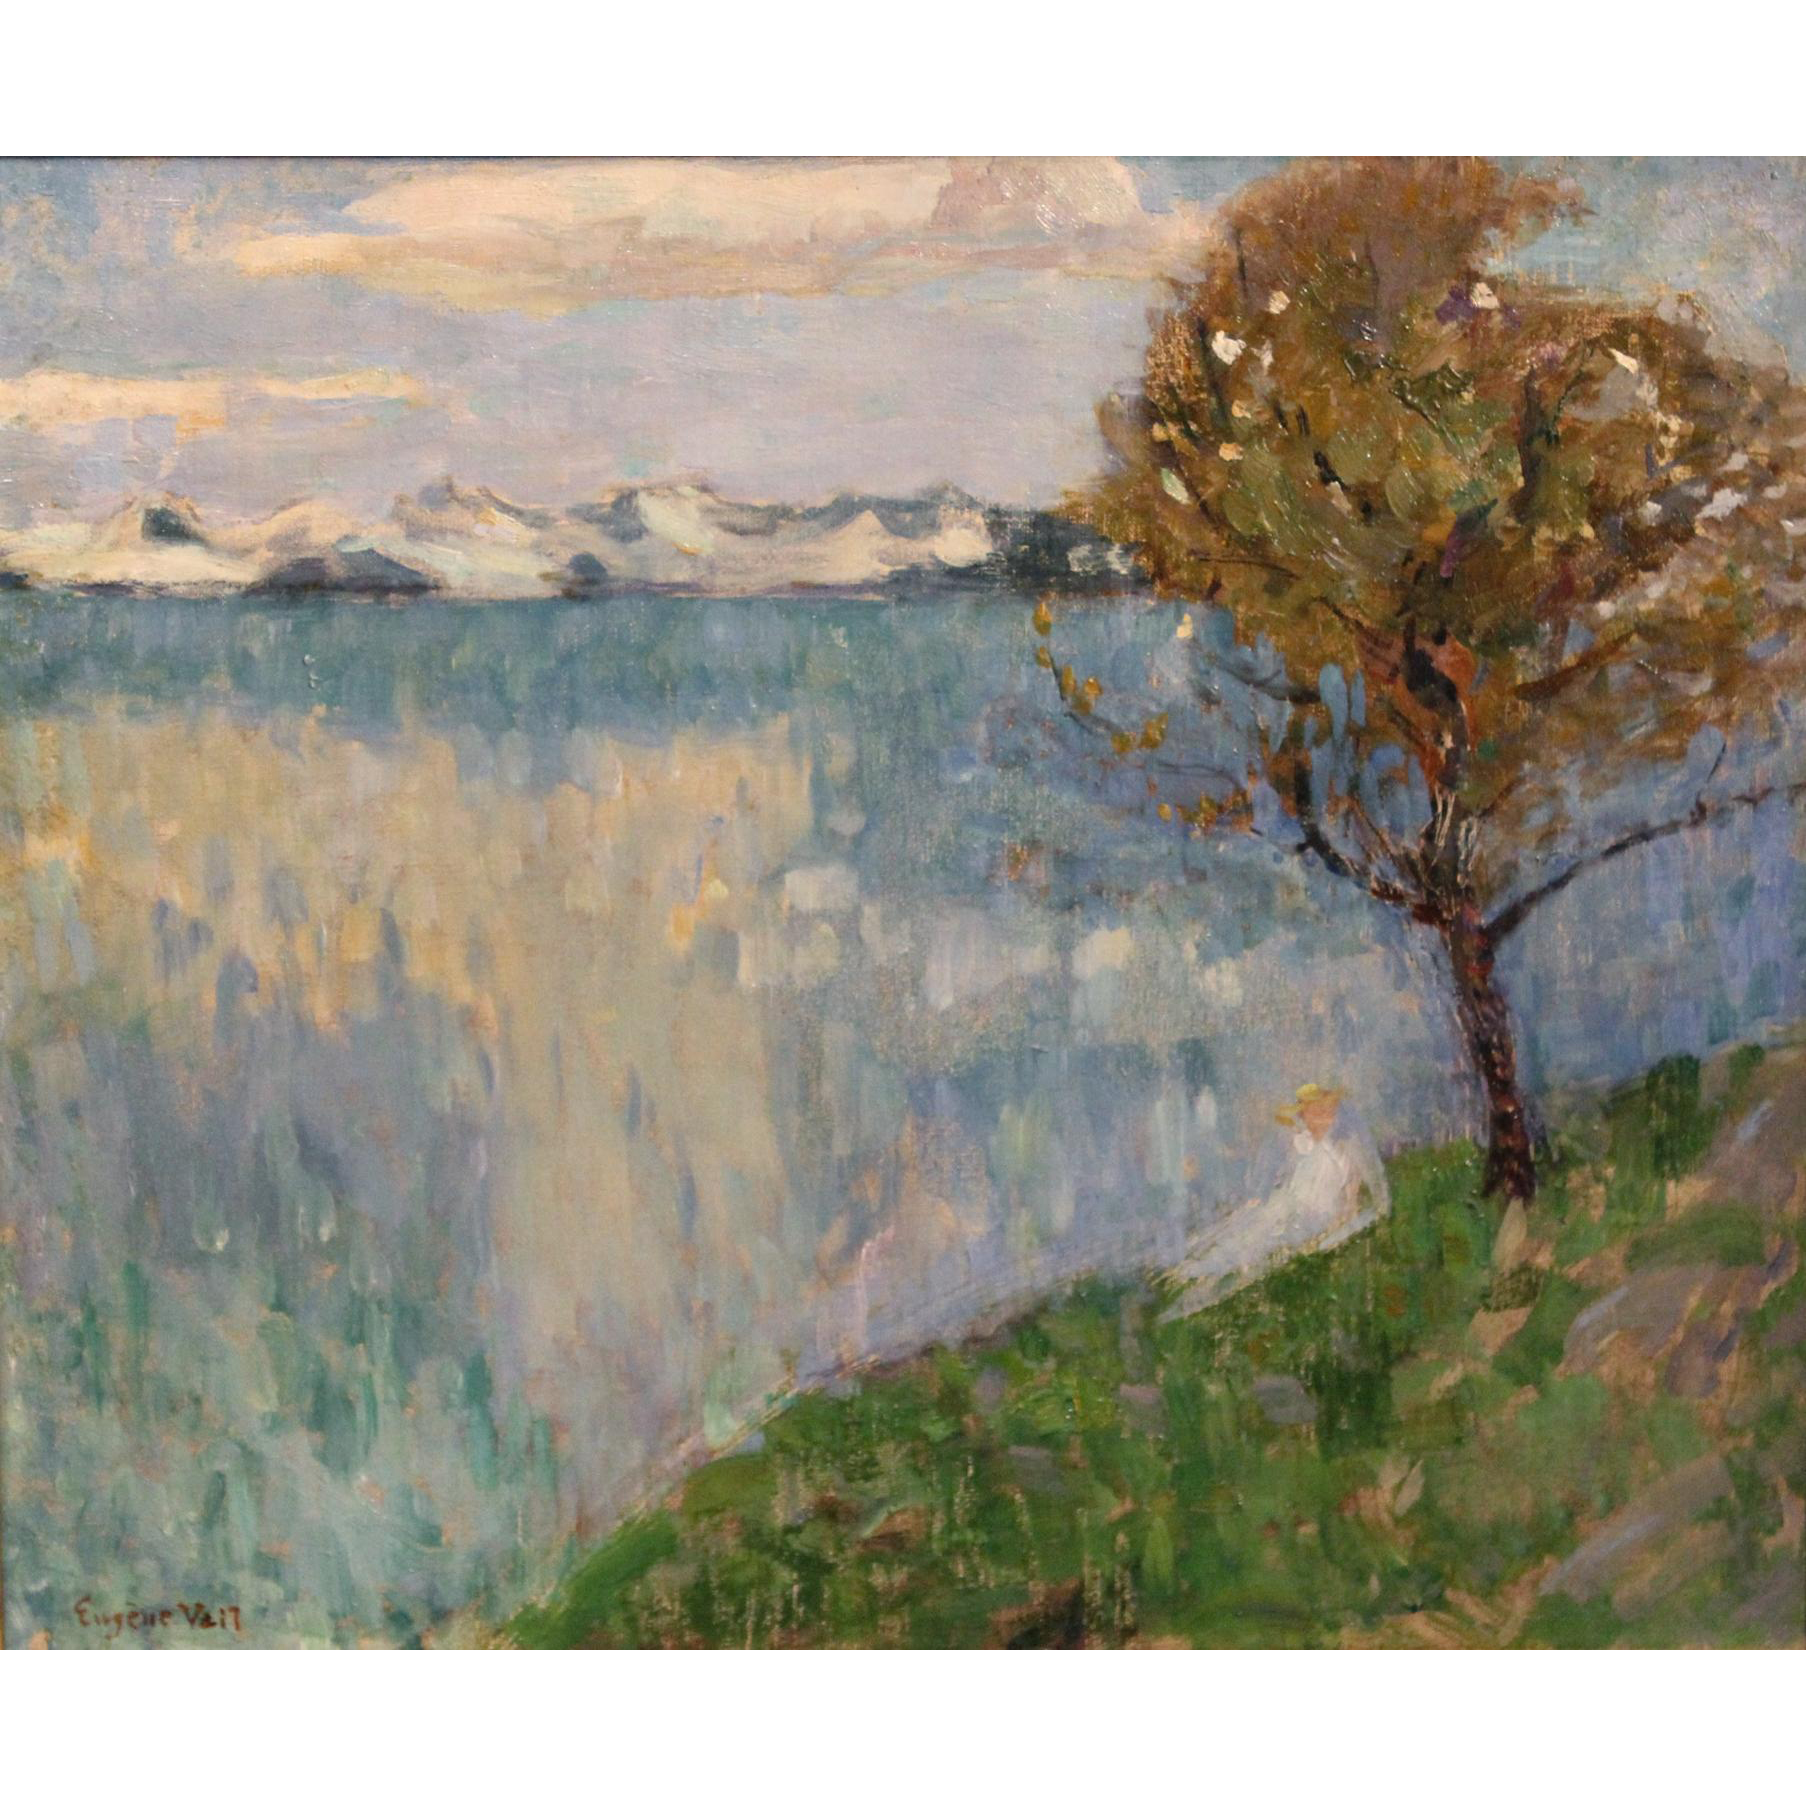 Eugene Vail Landscape Oil Painting - By Quiet Waters circa 1905